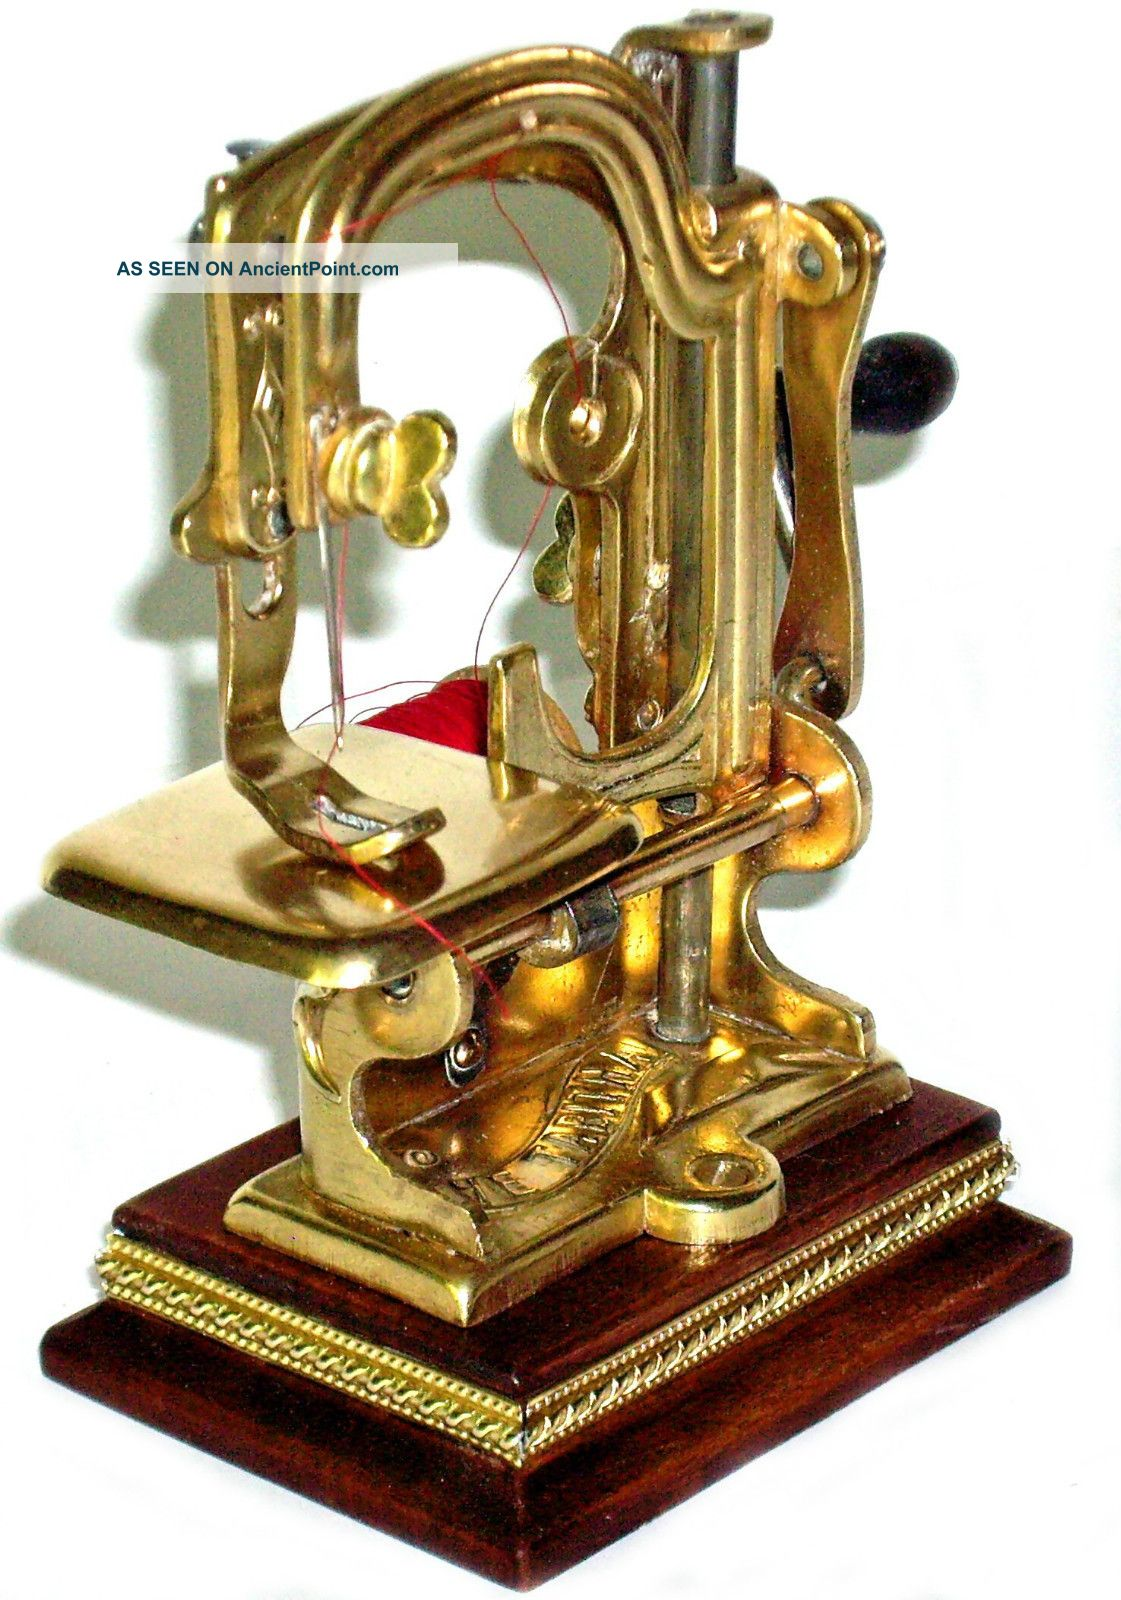 Toy Sewing Machine Sewing Machines photo